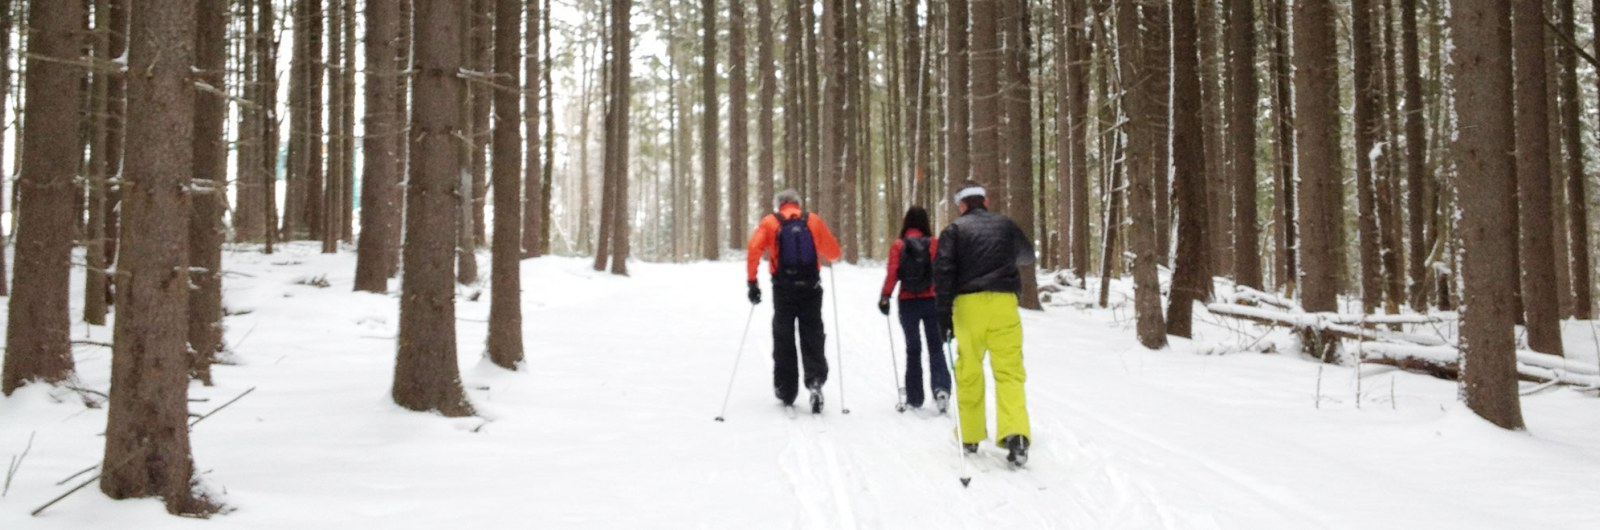 Three cross country skiers on trail with fresh snow in the woods.